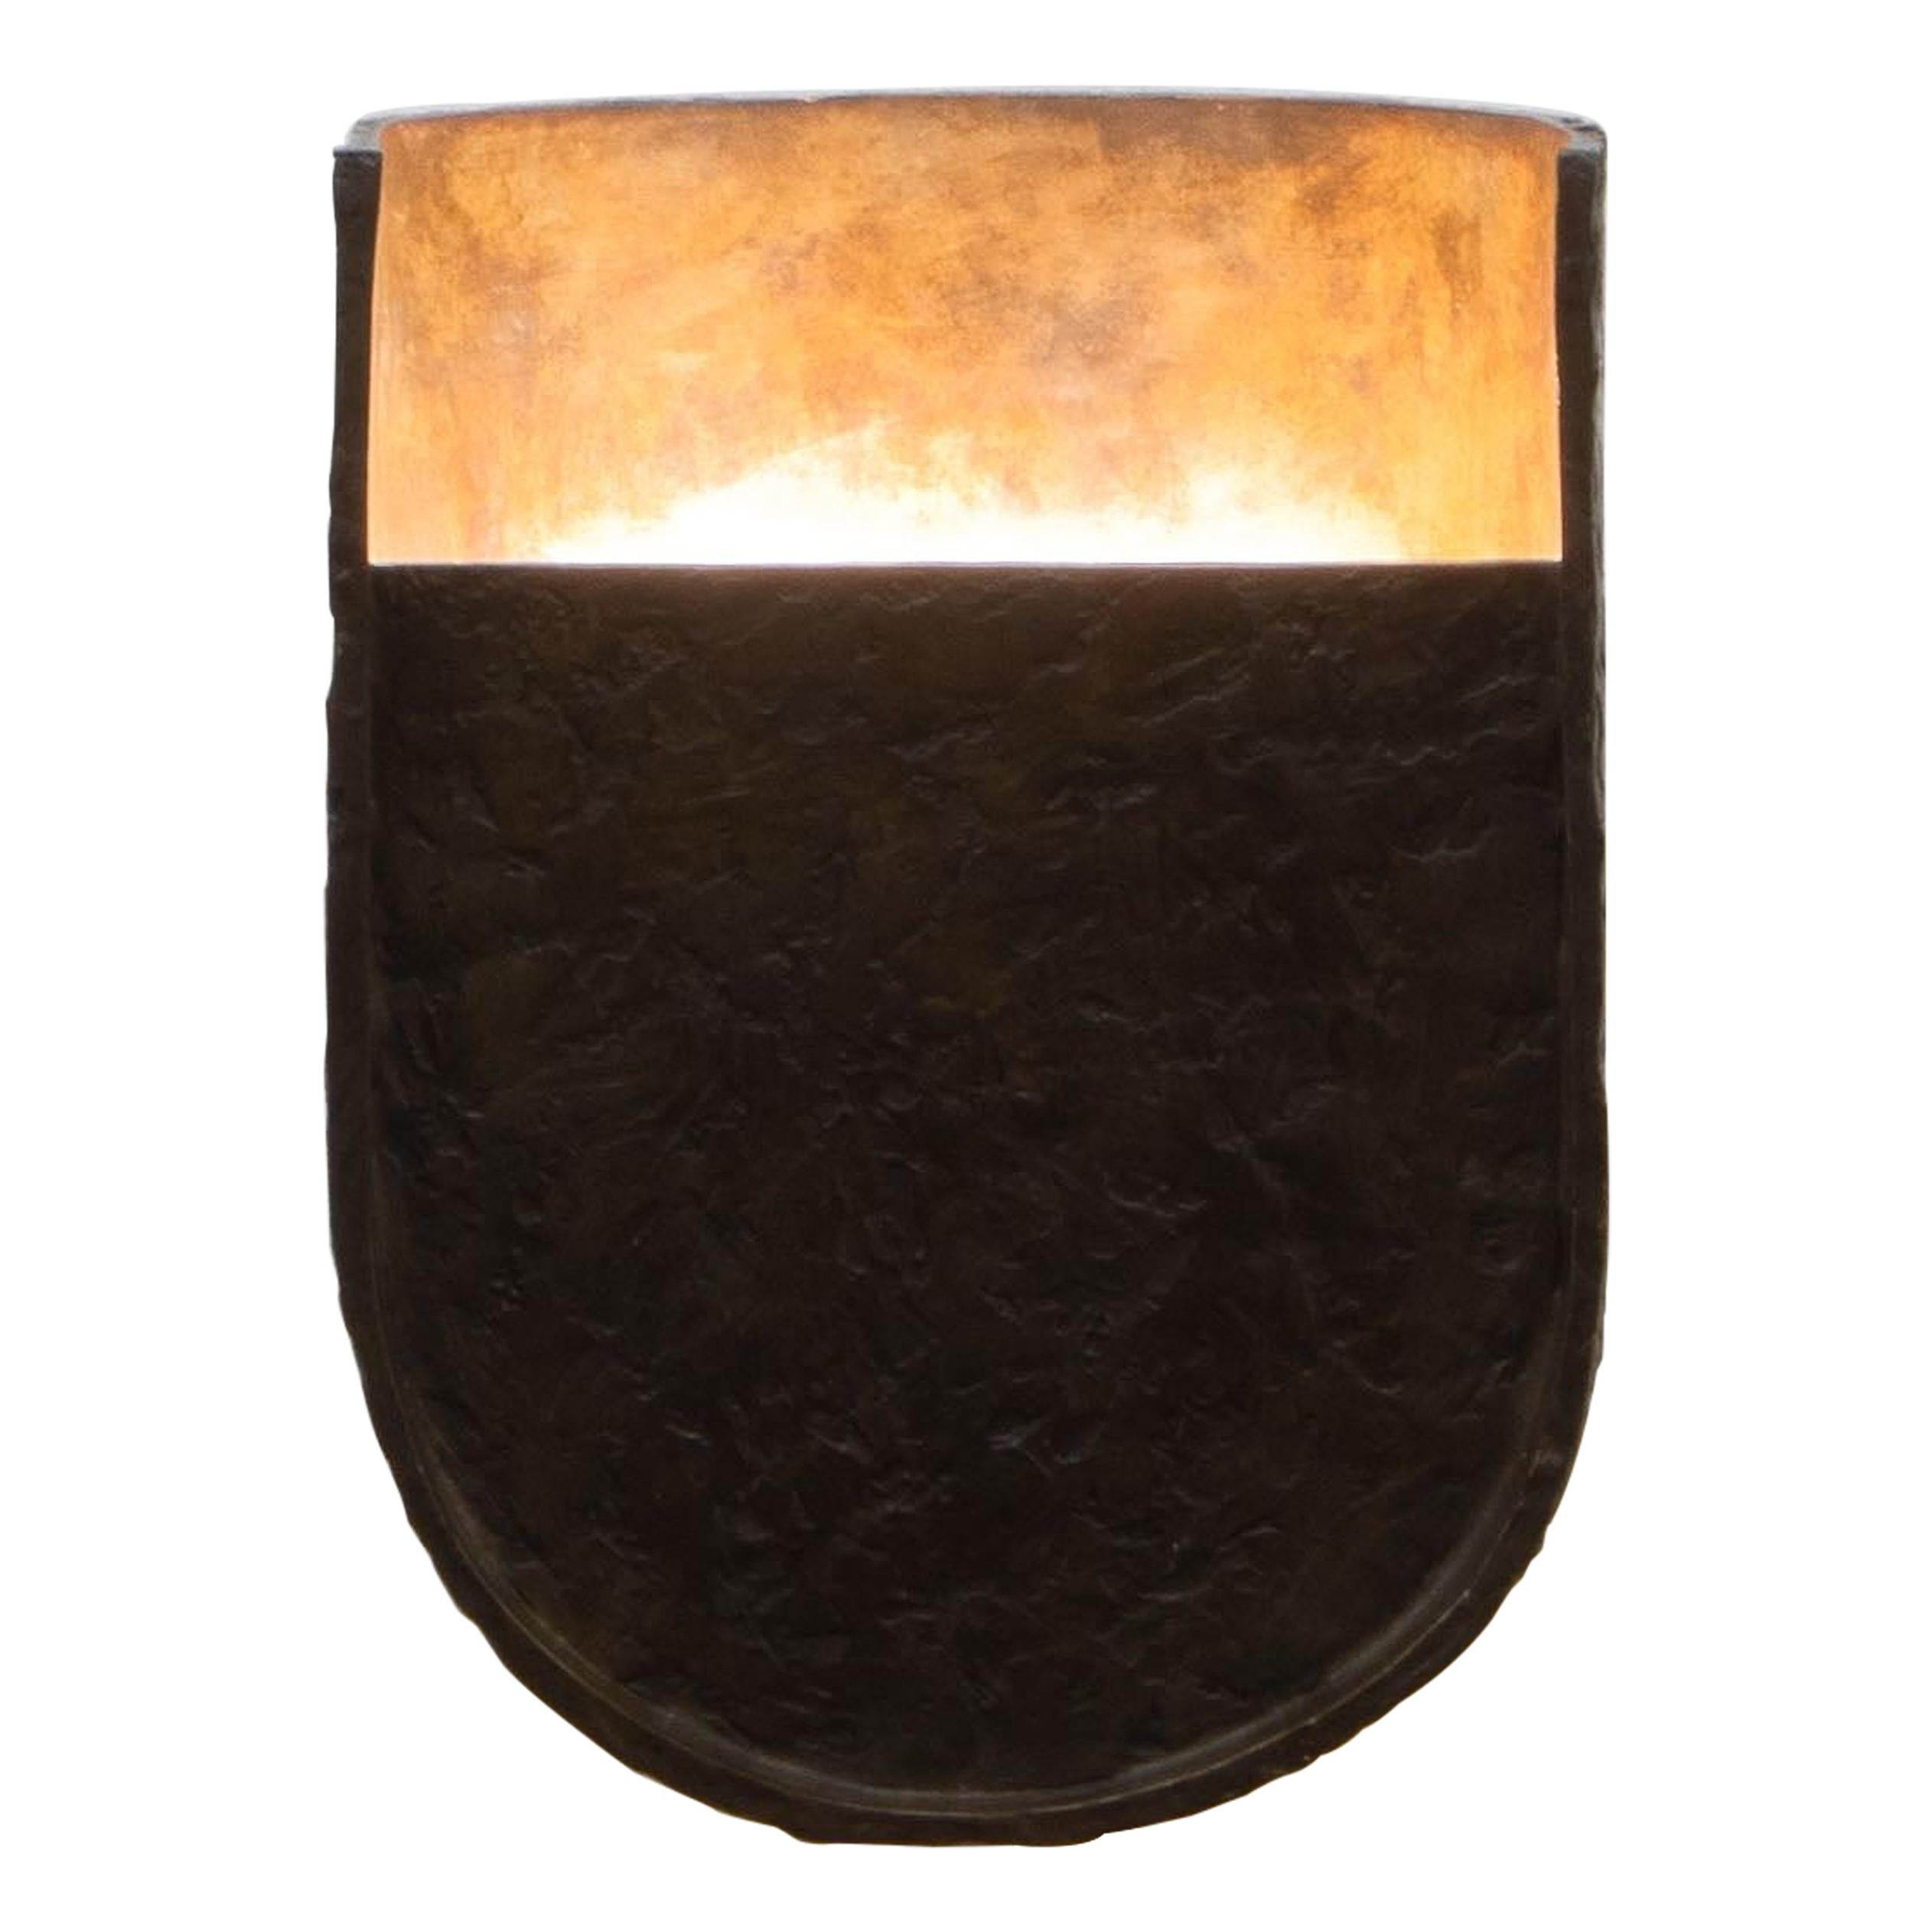 Garnier & Linker Mask Sconce Small in Bronze